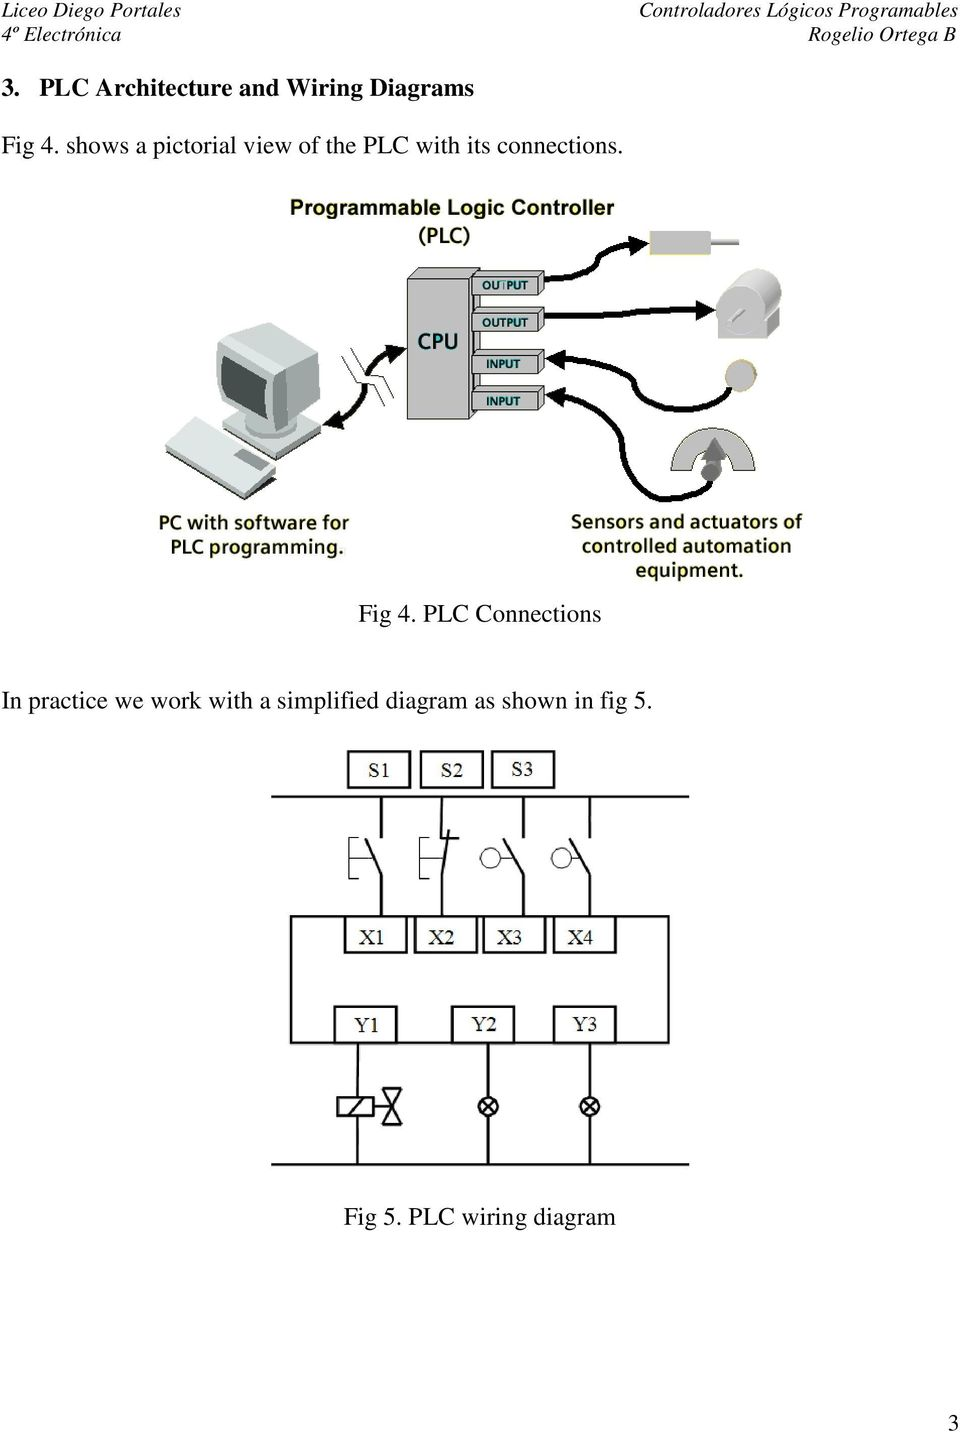 page_3?resize\\\\\=665%2C992 siemens duct detector wiring diagram the best wiring diagram 2017 siemens xls wiring diagram at creativeand.co